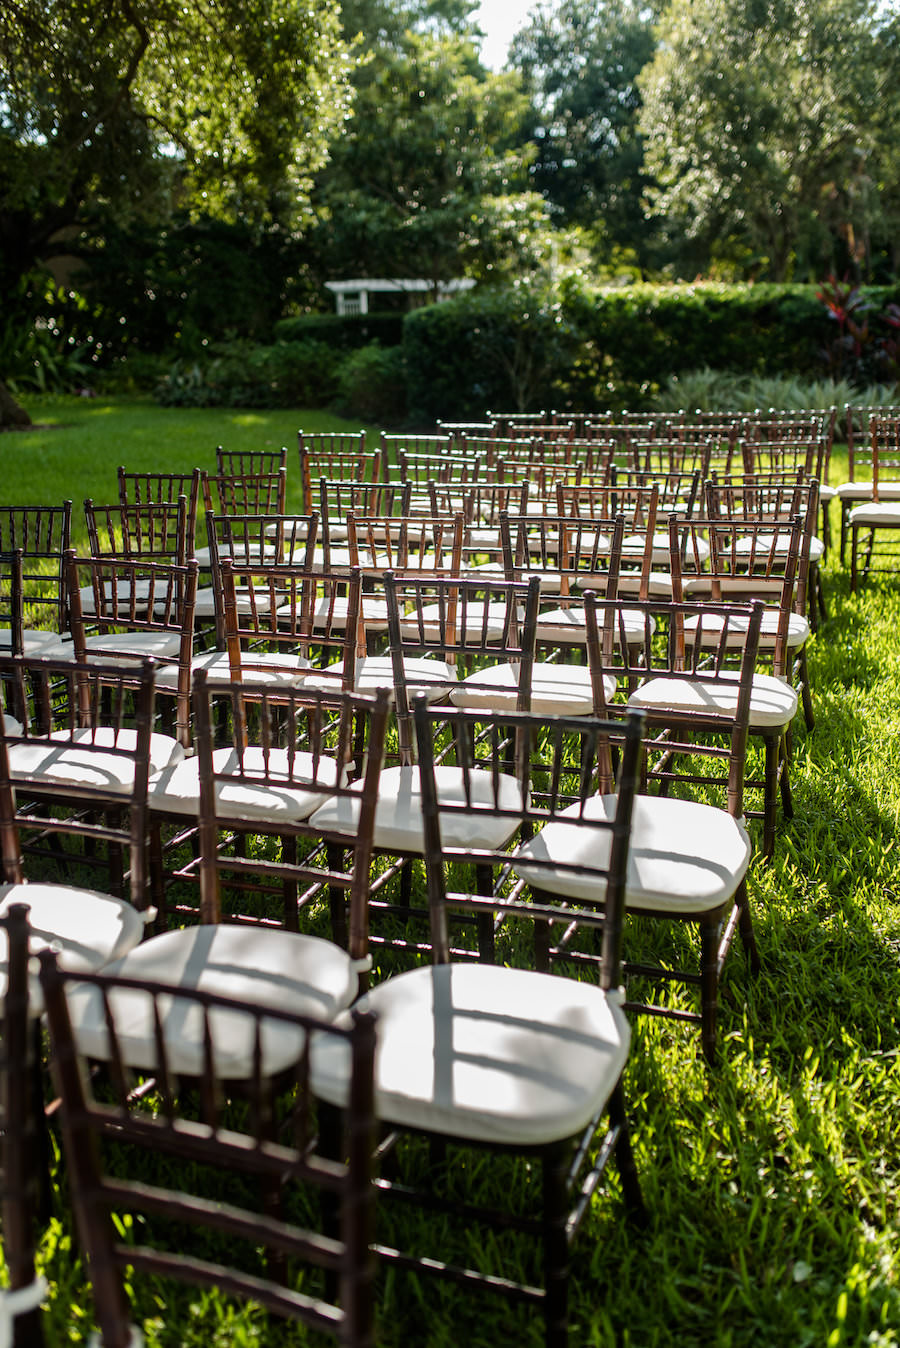 Tampa Garden Club Garden Wedding Ceremony with Wooden Chiavari Chairs with White Cushions